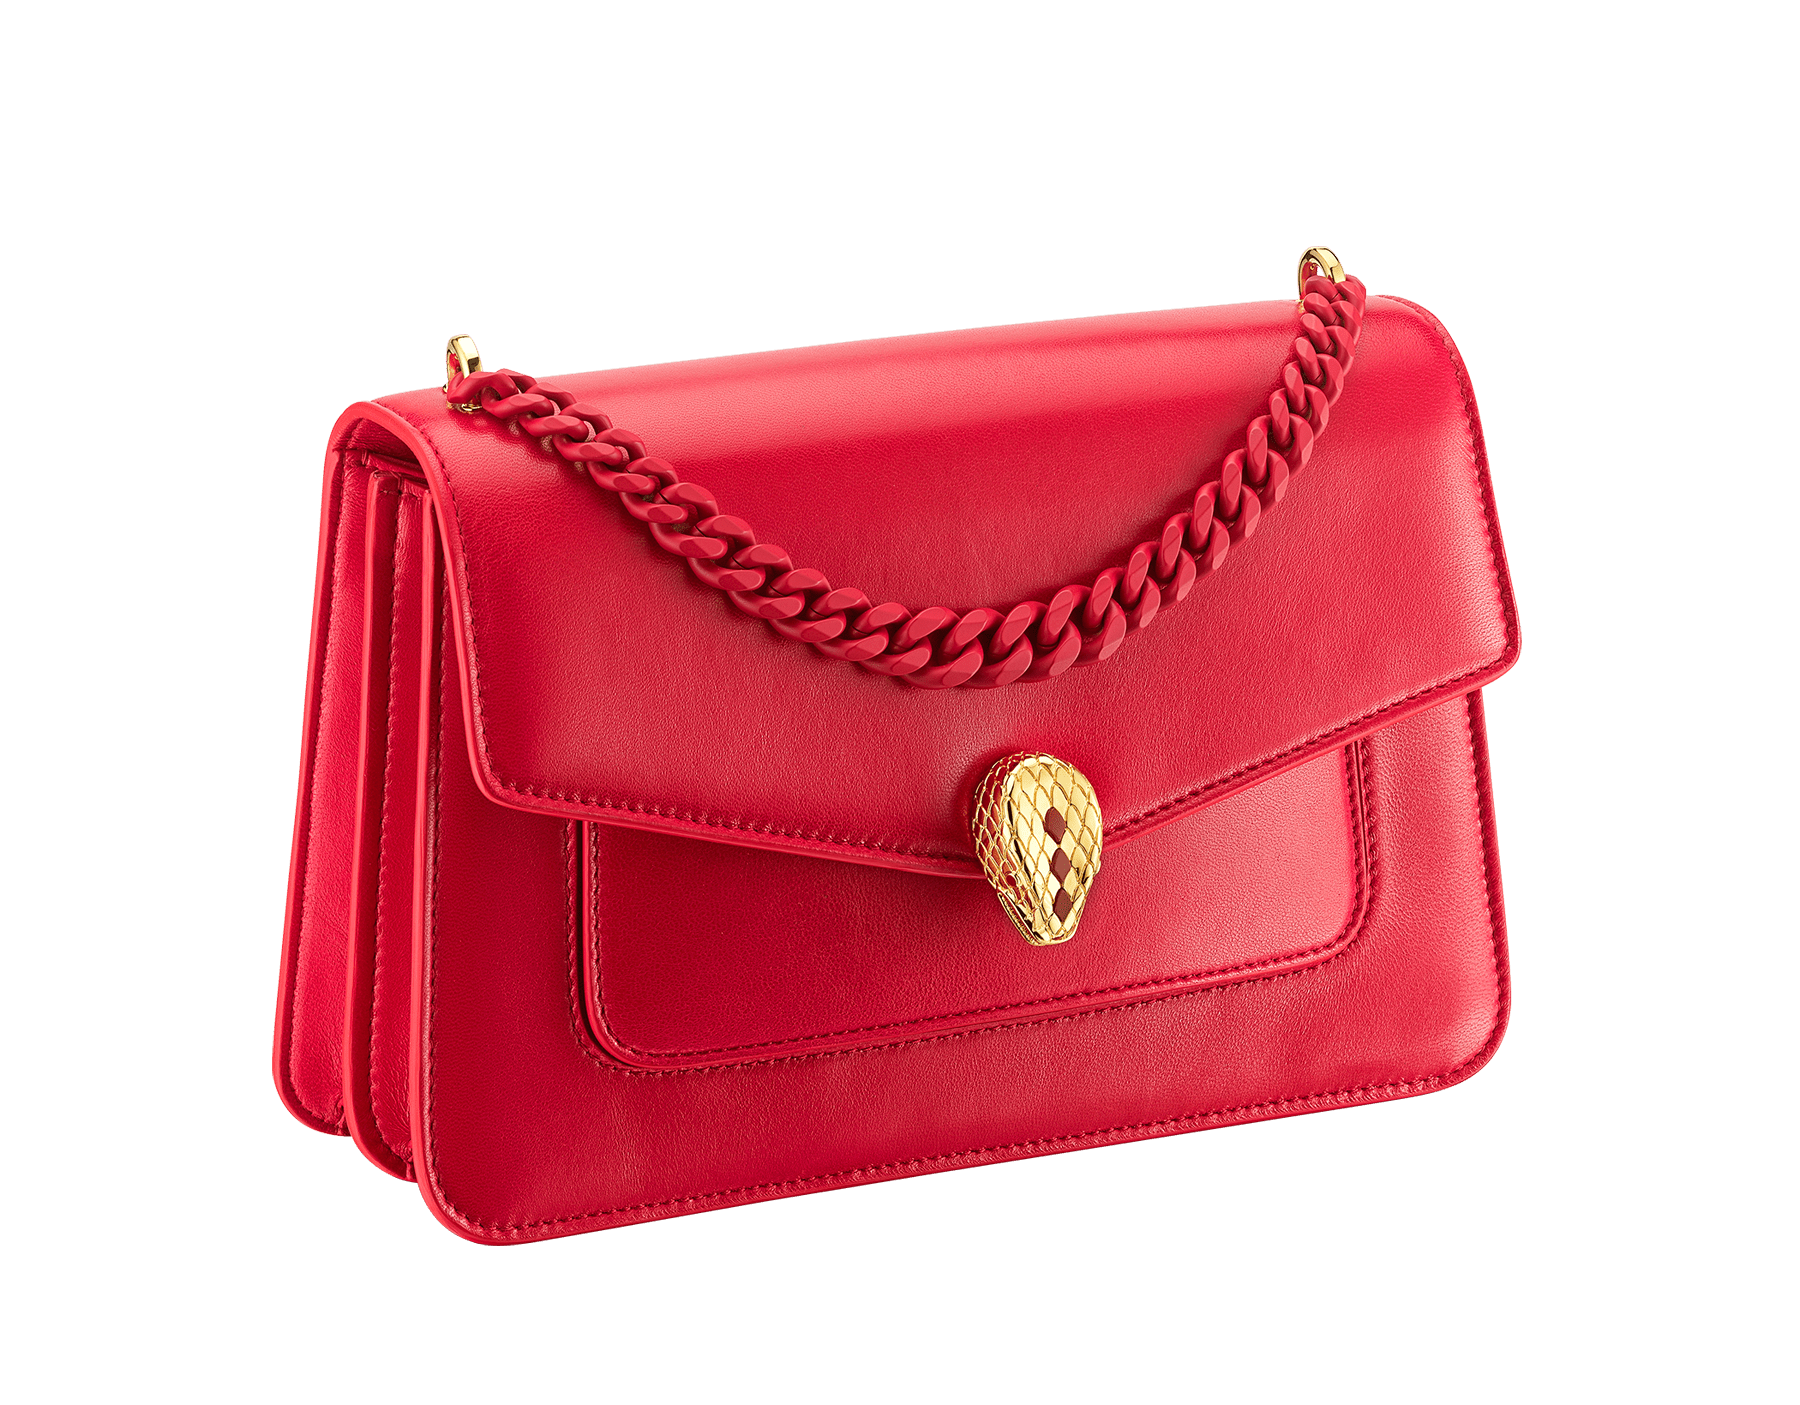 """Serpenti Forever"" maxi chain crossbody bag in Amaranth Garnet red nappa leather, with Pink Spinel fuchsia nappa leather internal lining. New Serpenti head closure in gold plated brass, finished with small red carnelian scales in the middle and red enamel eyes. 1138-MCN image 2"